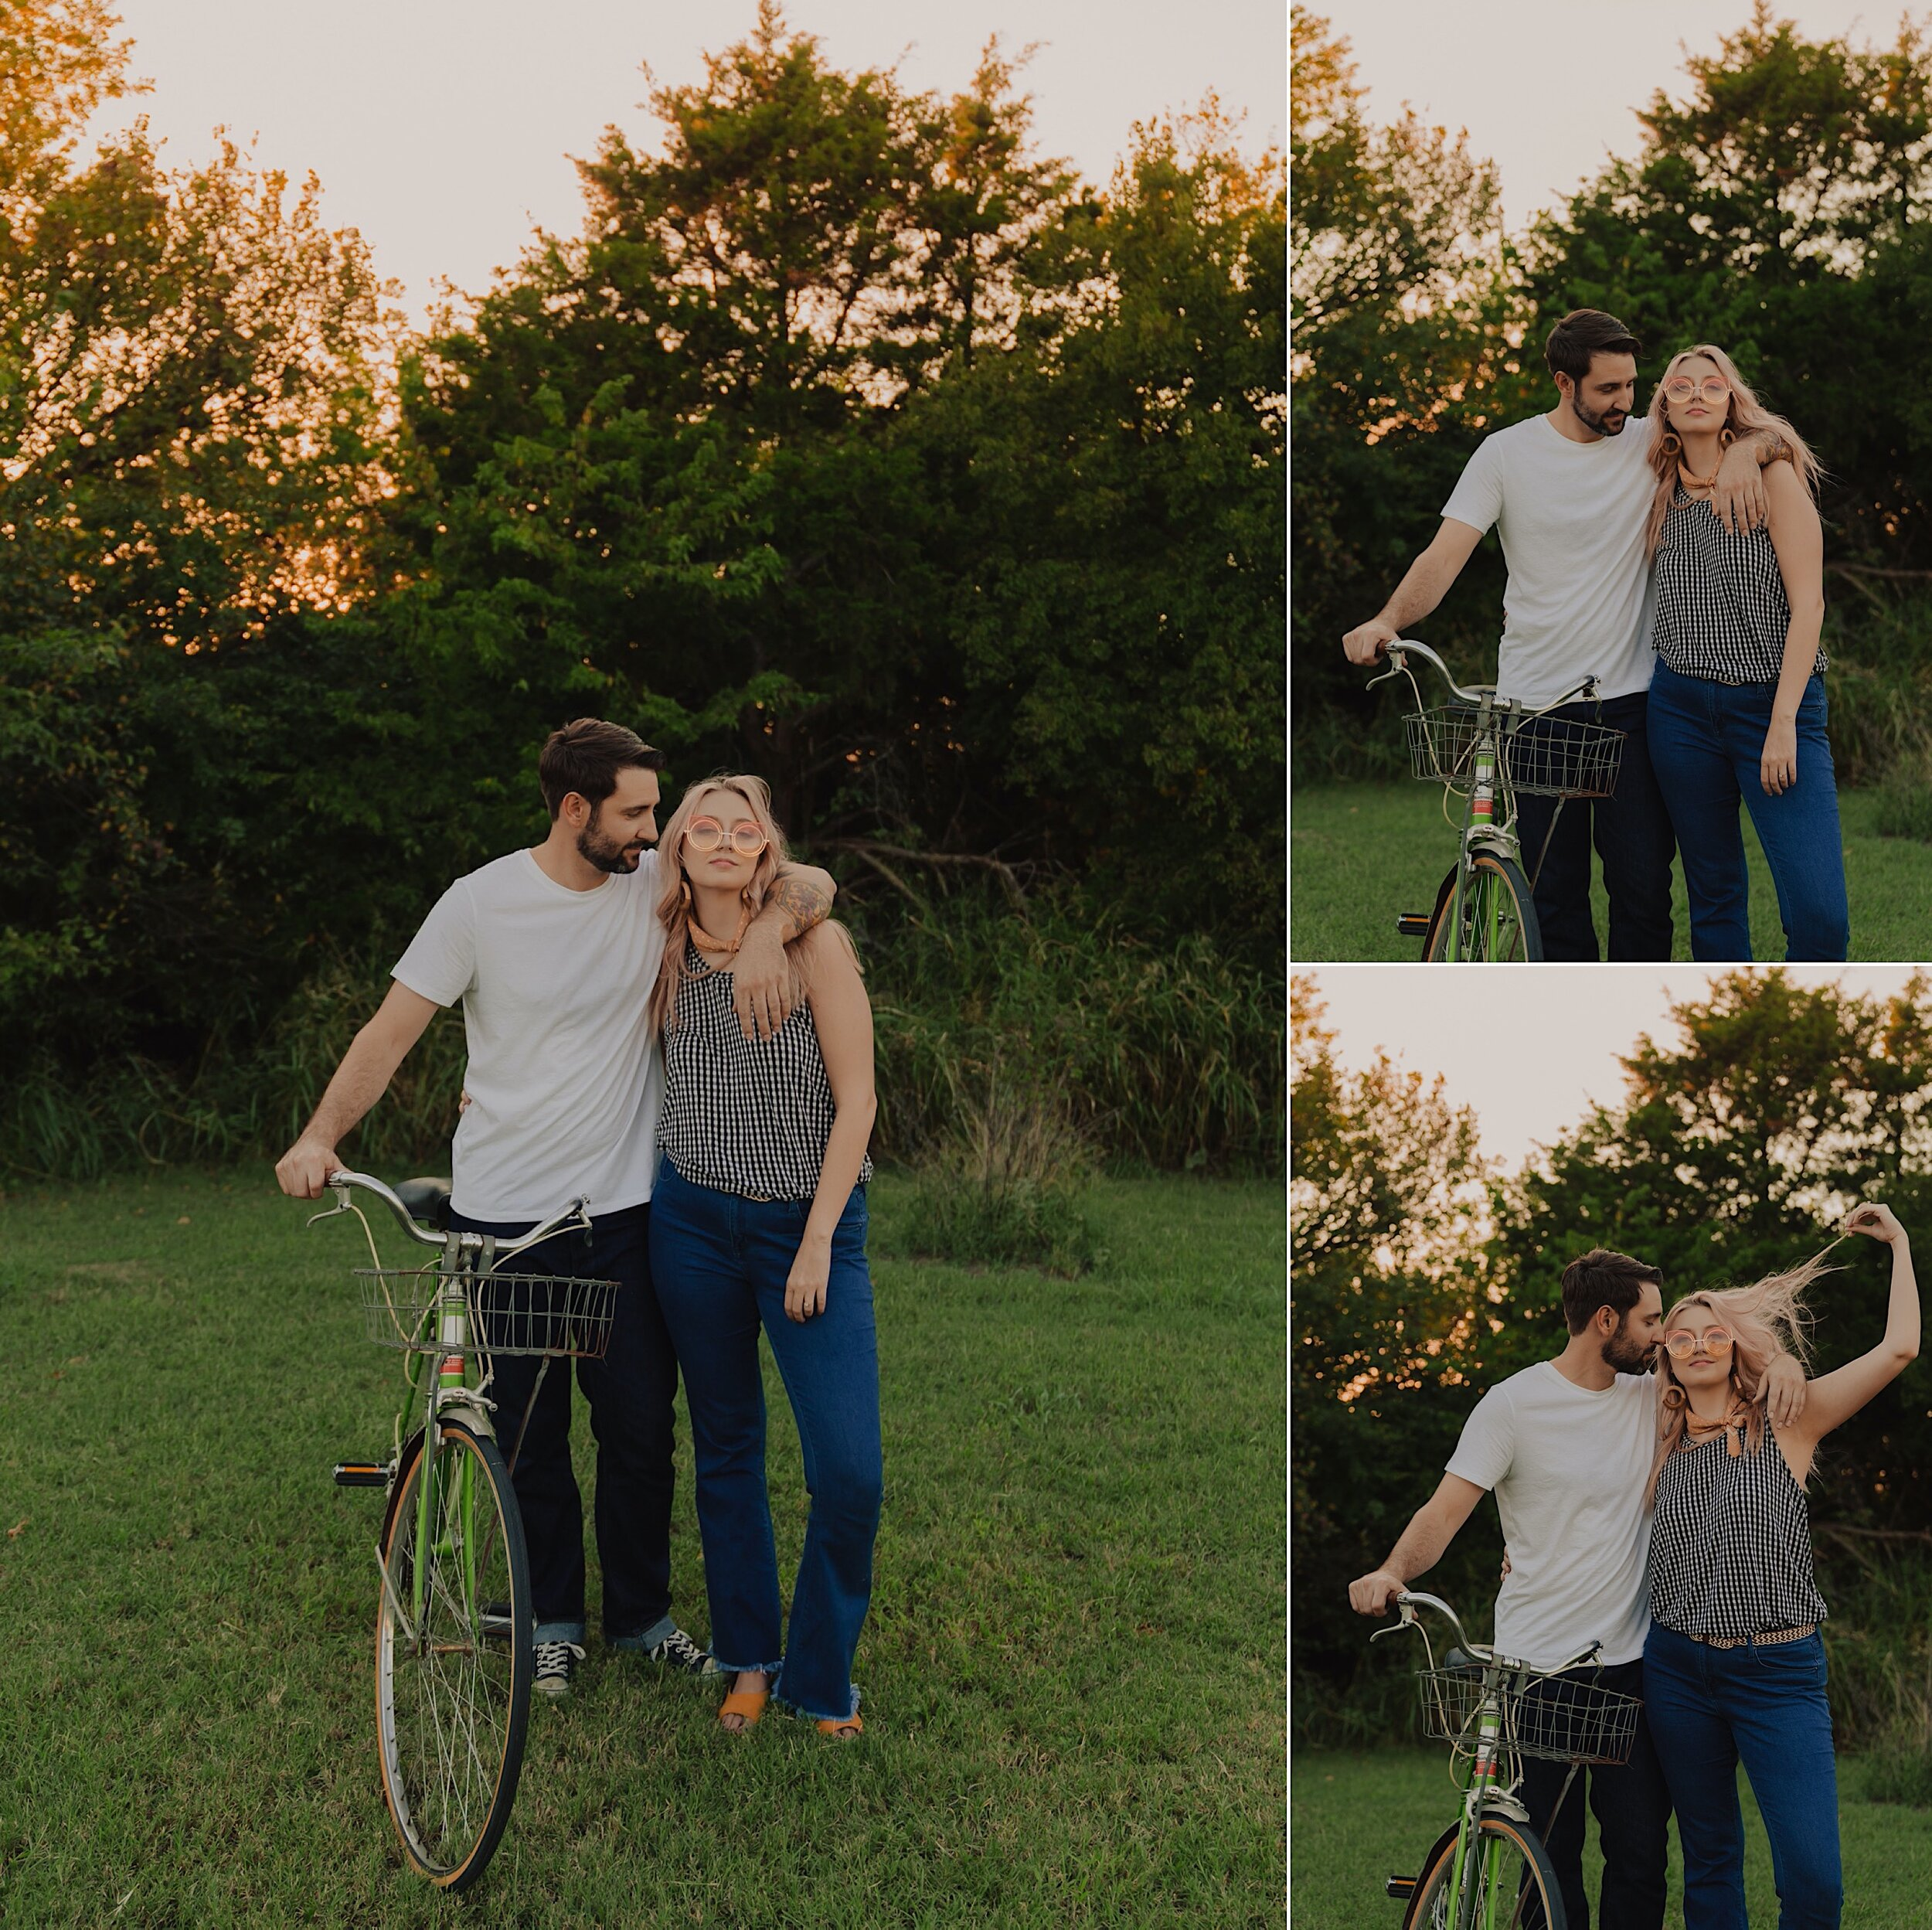 70's picnic couple session, 70s Picnic for Couple Session